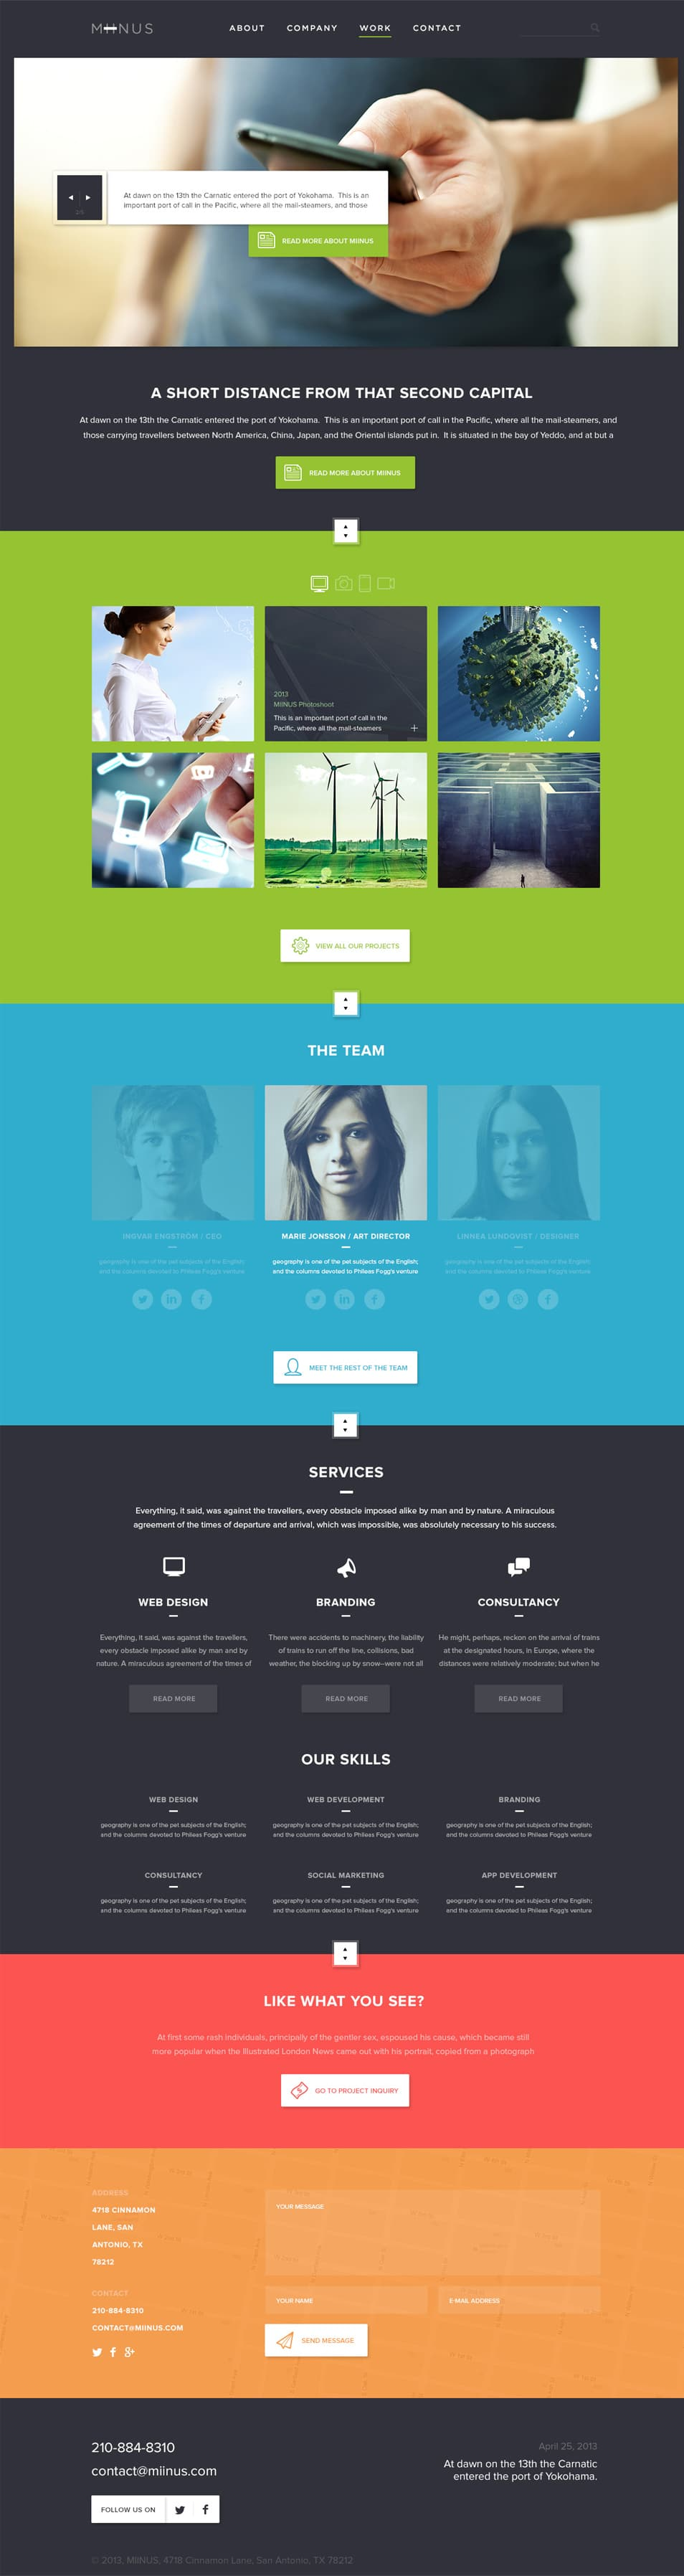 Miinus Free Corporate PSD page